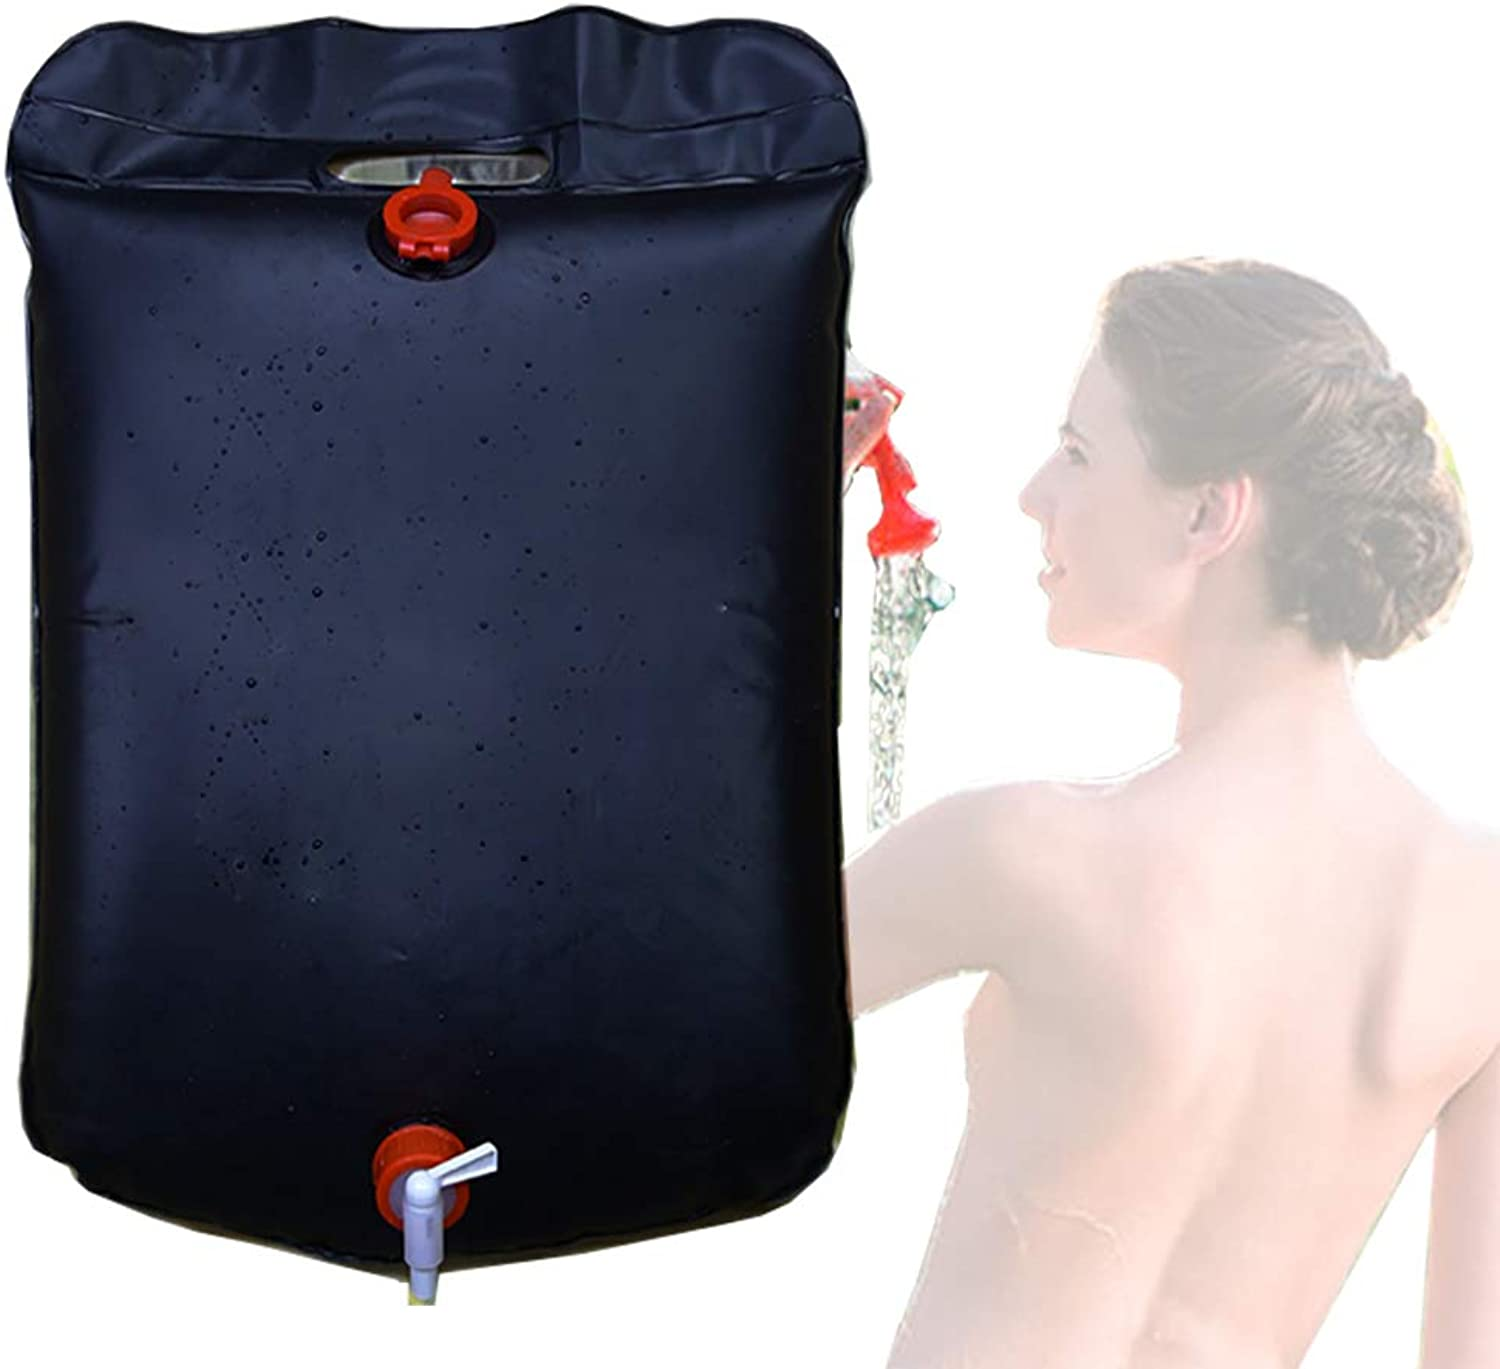 Solar Shower Bag,Solar Heating Premium Camping Shower Bag Hot Water Portable for Showering at The Campsite Or Washing Off Dirty Hands and Feet